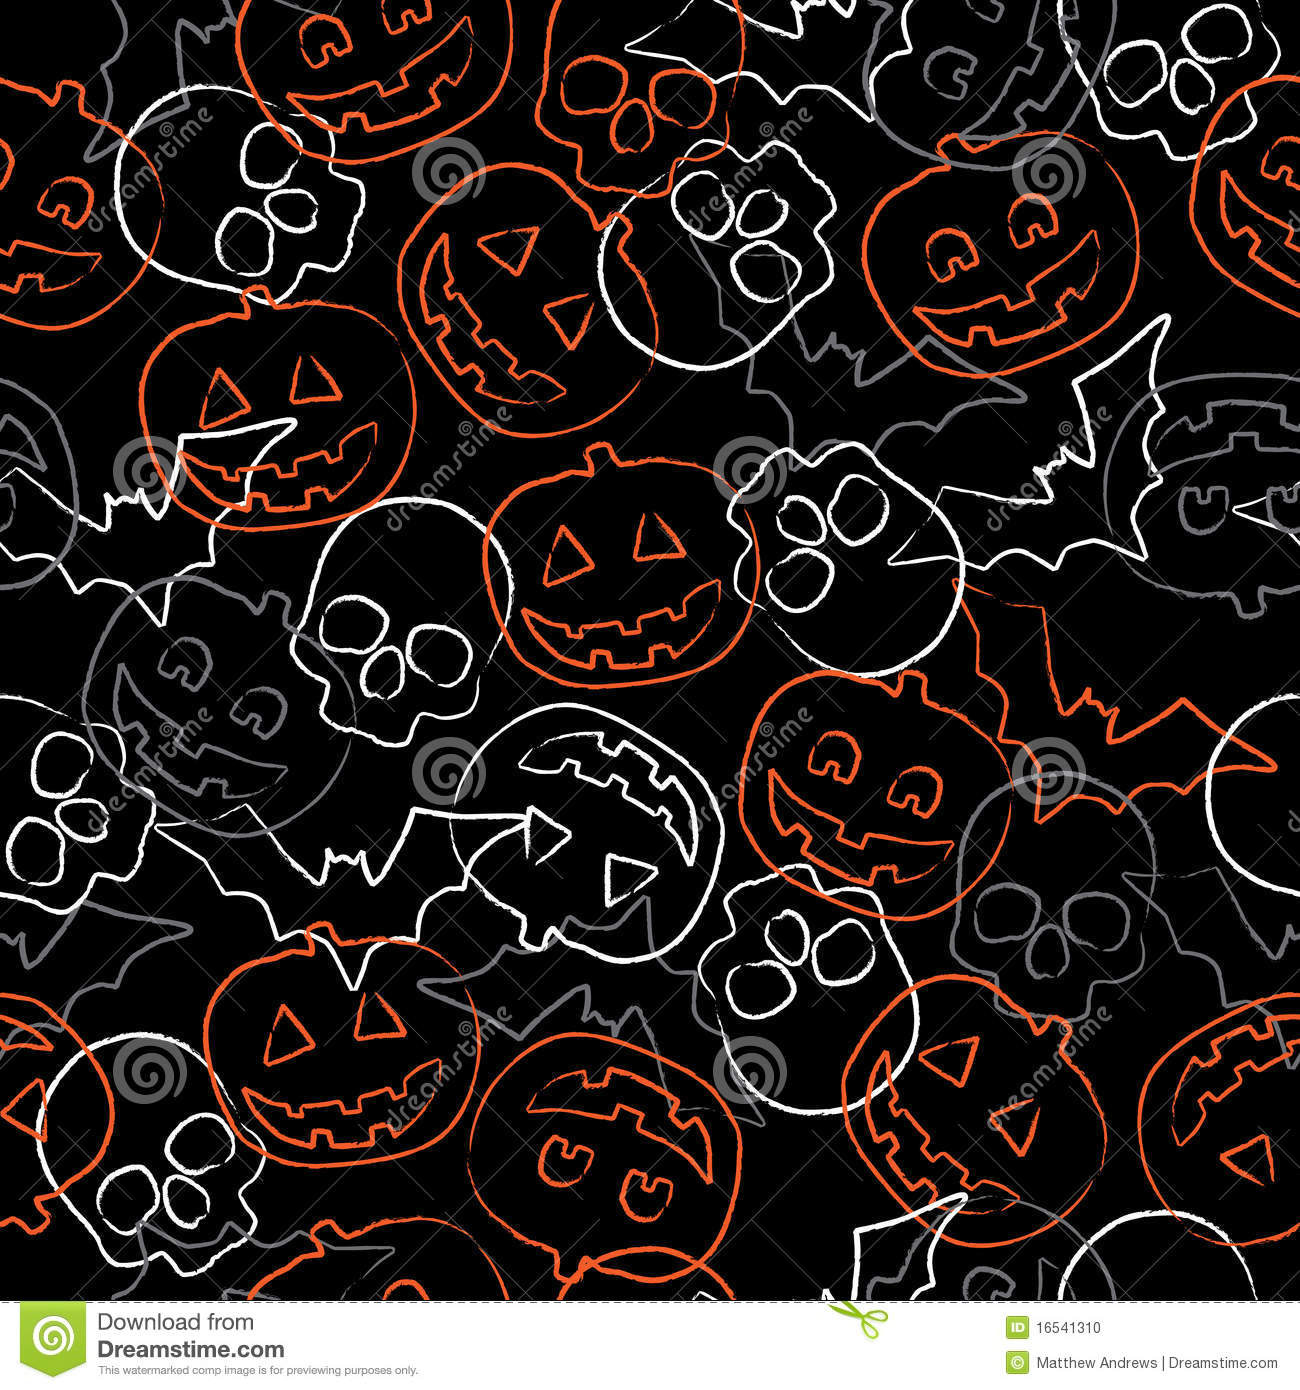 Seamless halloween pattern stock vector. Image of background ...